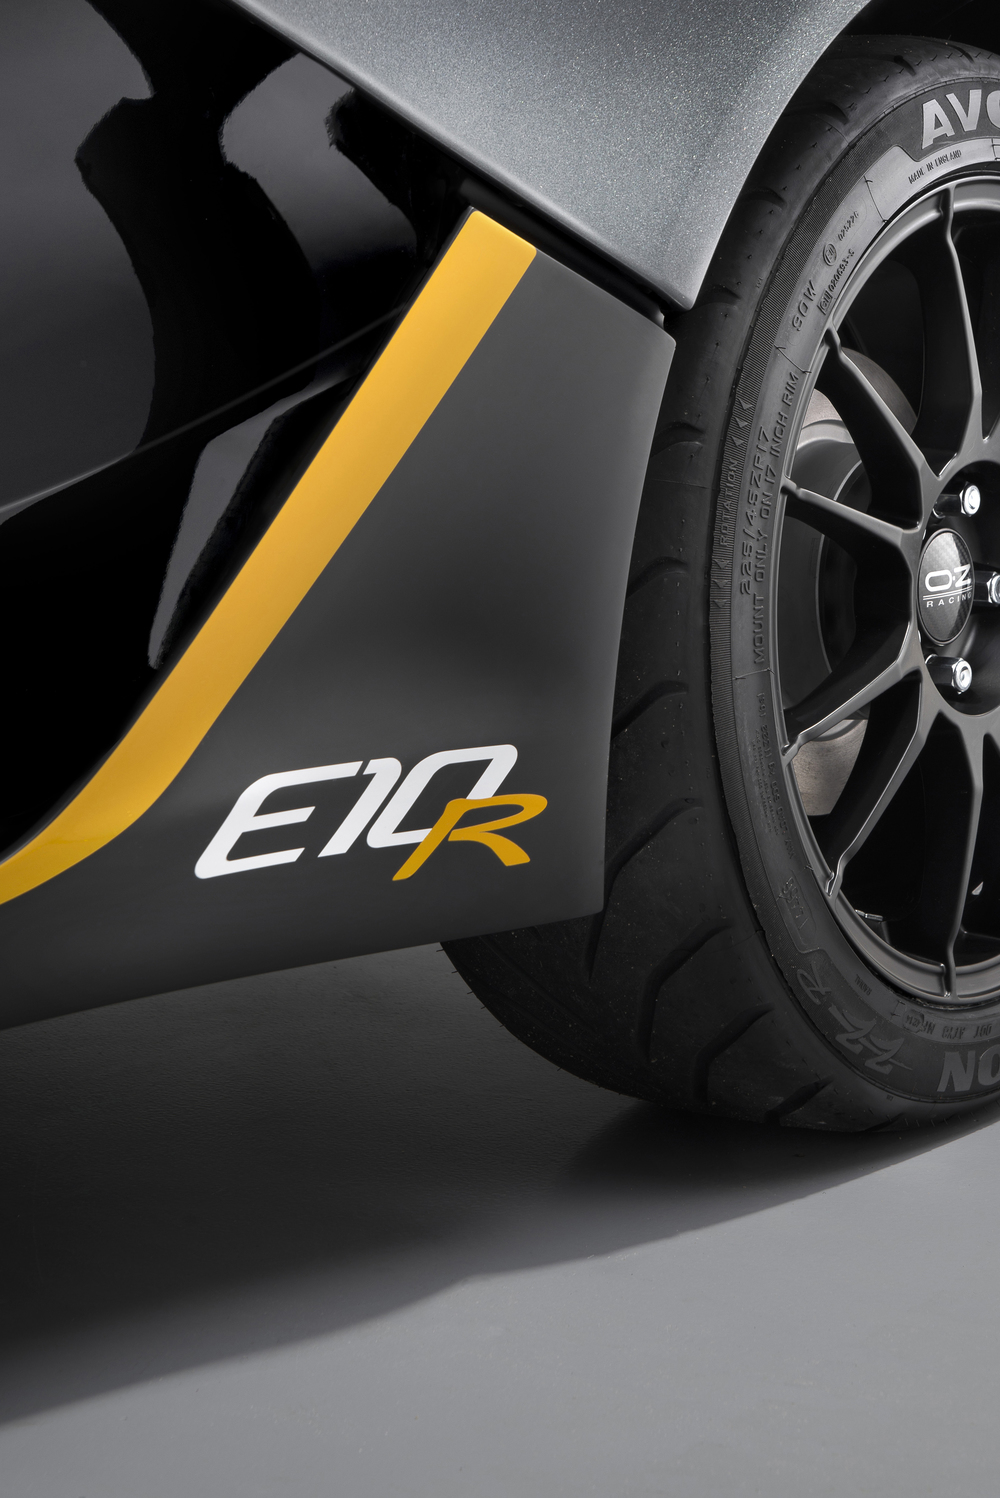 Zenos plans more powerful E10 'R'